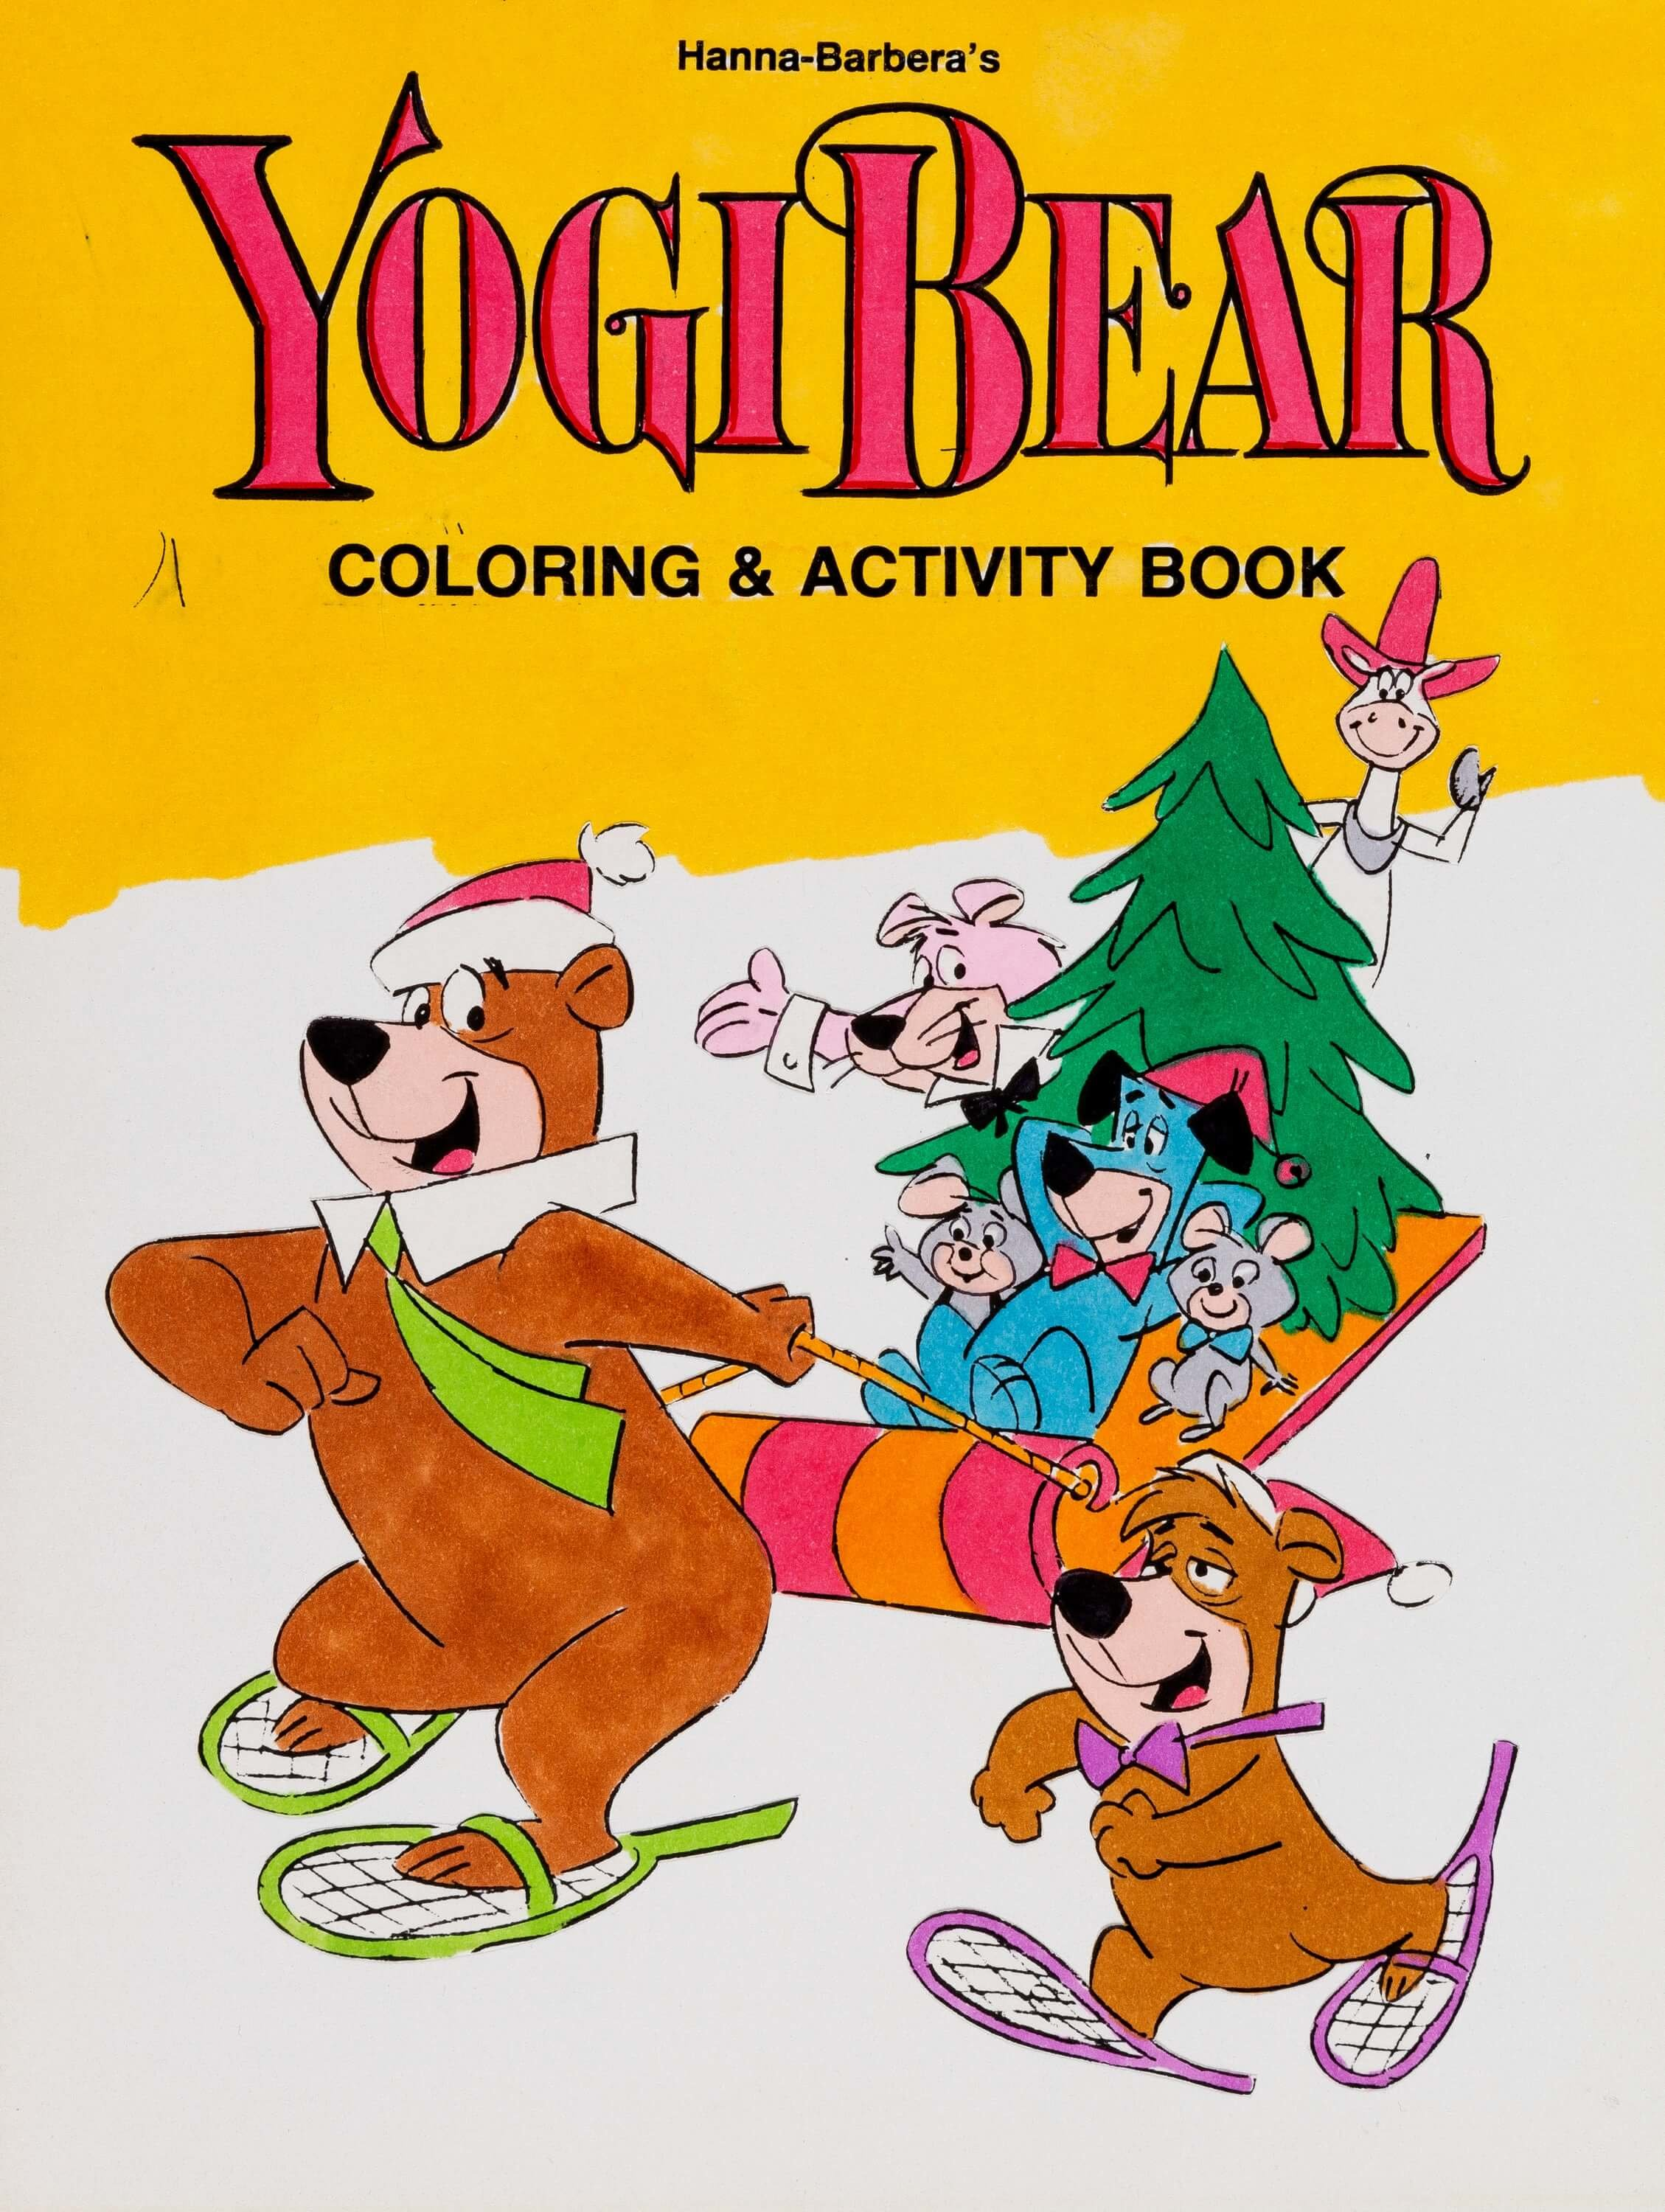 Yogi Bear Coloring Book Cover Illustration Original Art Hanna Barbera 1970s Here Is An Early Proof Artwork For A Childrens And